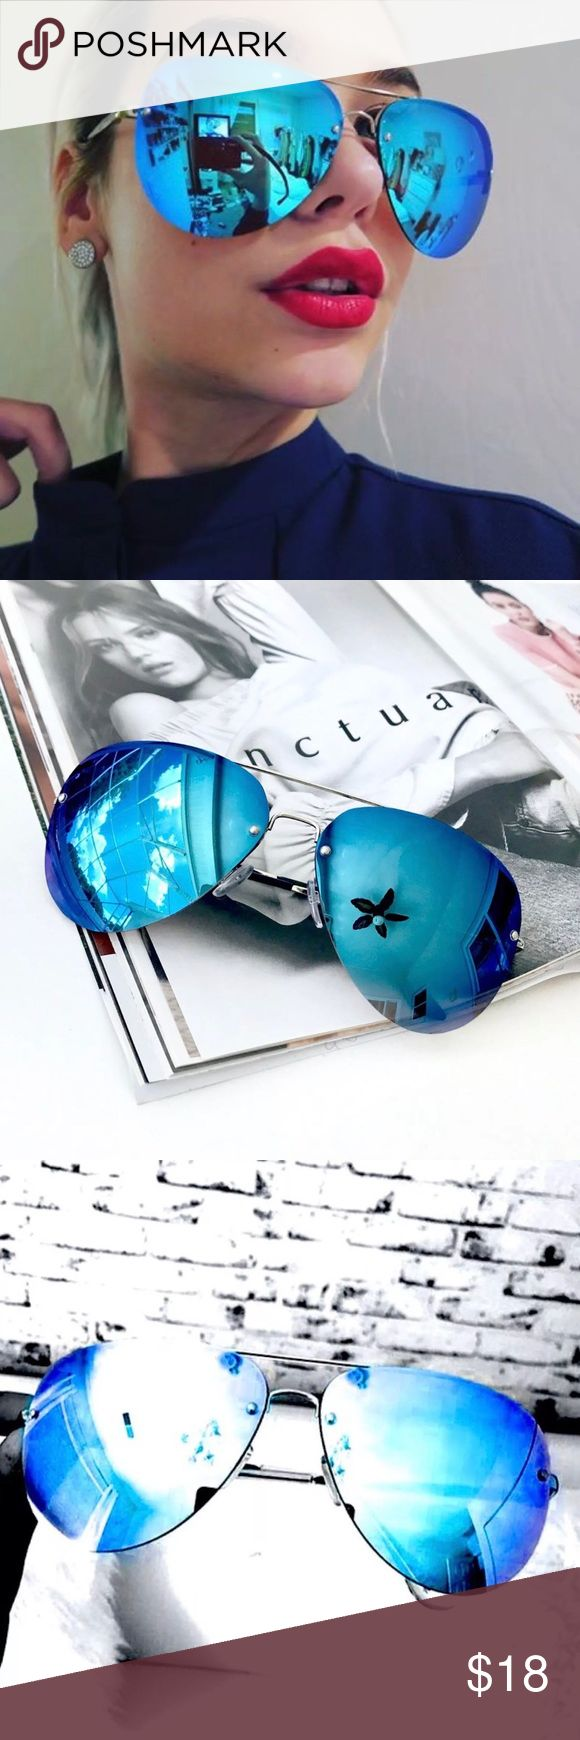 "Oversized ""BEBE"" Mirrored Aviator Sunglasses Oversized Aviator Unisex Sunglasses. Silver frames with blue mirrored lenses.   Color: SILVER/BLUE  ➲UV400 100% UV Protection ➲Light weight and comfortable ➲Durable hard plastic  Measurements: Lens Height: 58 mm (2.29 in) Lens Width: 65 mm (2.56 in) Bridge: 20 mm (0.79 in) Frame Width: 149 mm (5.87 in) Arm Length: 142 mm (5.60 in) Accessories Sunglasses"